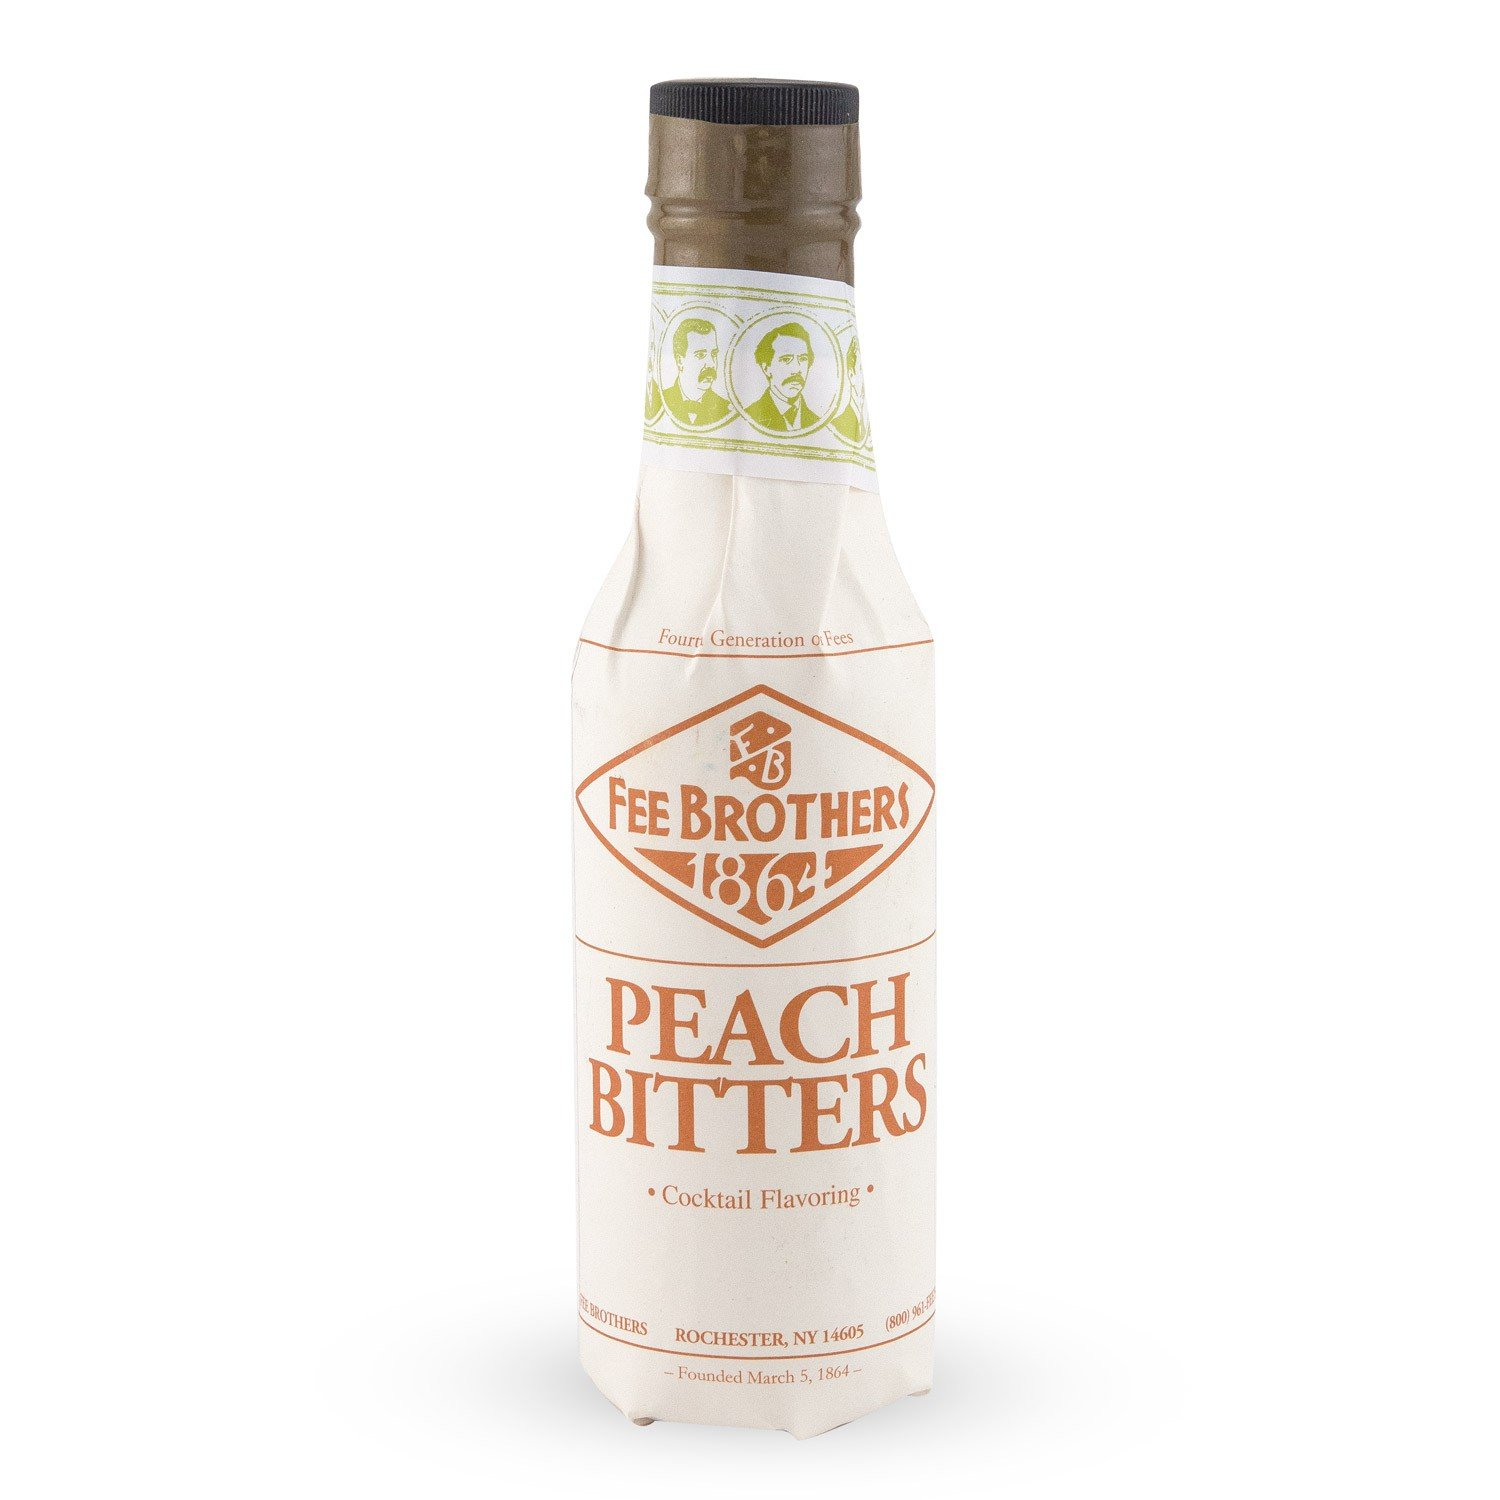 FEE BROTHERS 1864 BITTERS PEACH Bitter aromatizzante CL.10